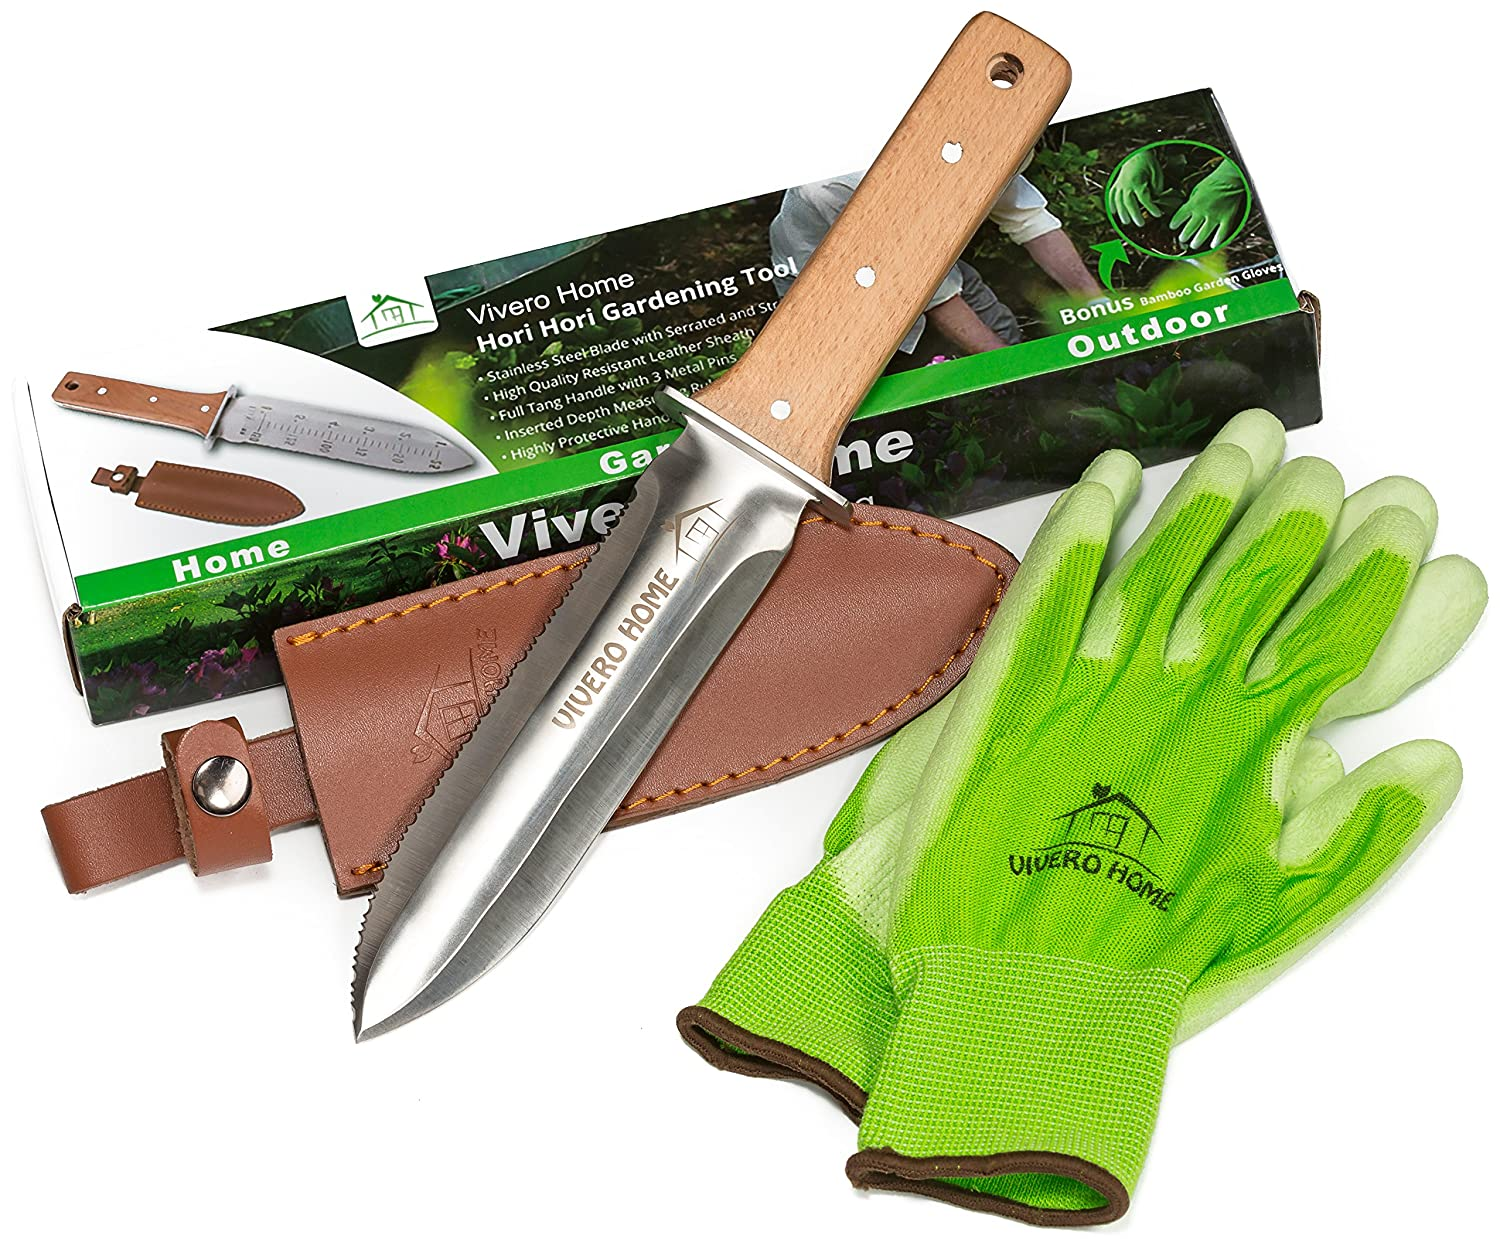 Nice Amazon.com : Vivero Home Multi Purpose Japanese Hori Hori Garden Knife +  Garden Gloves + Leather Sheath. Stainless Steel Blade With Handguard.